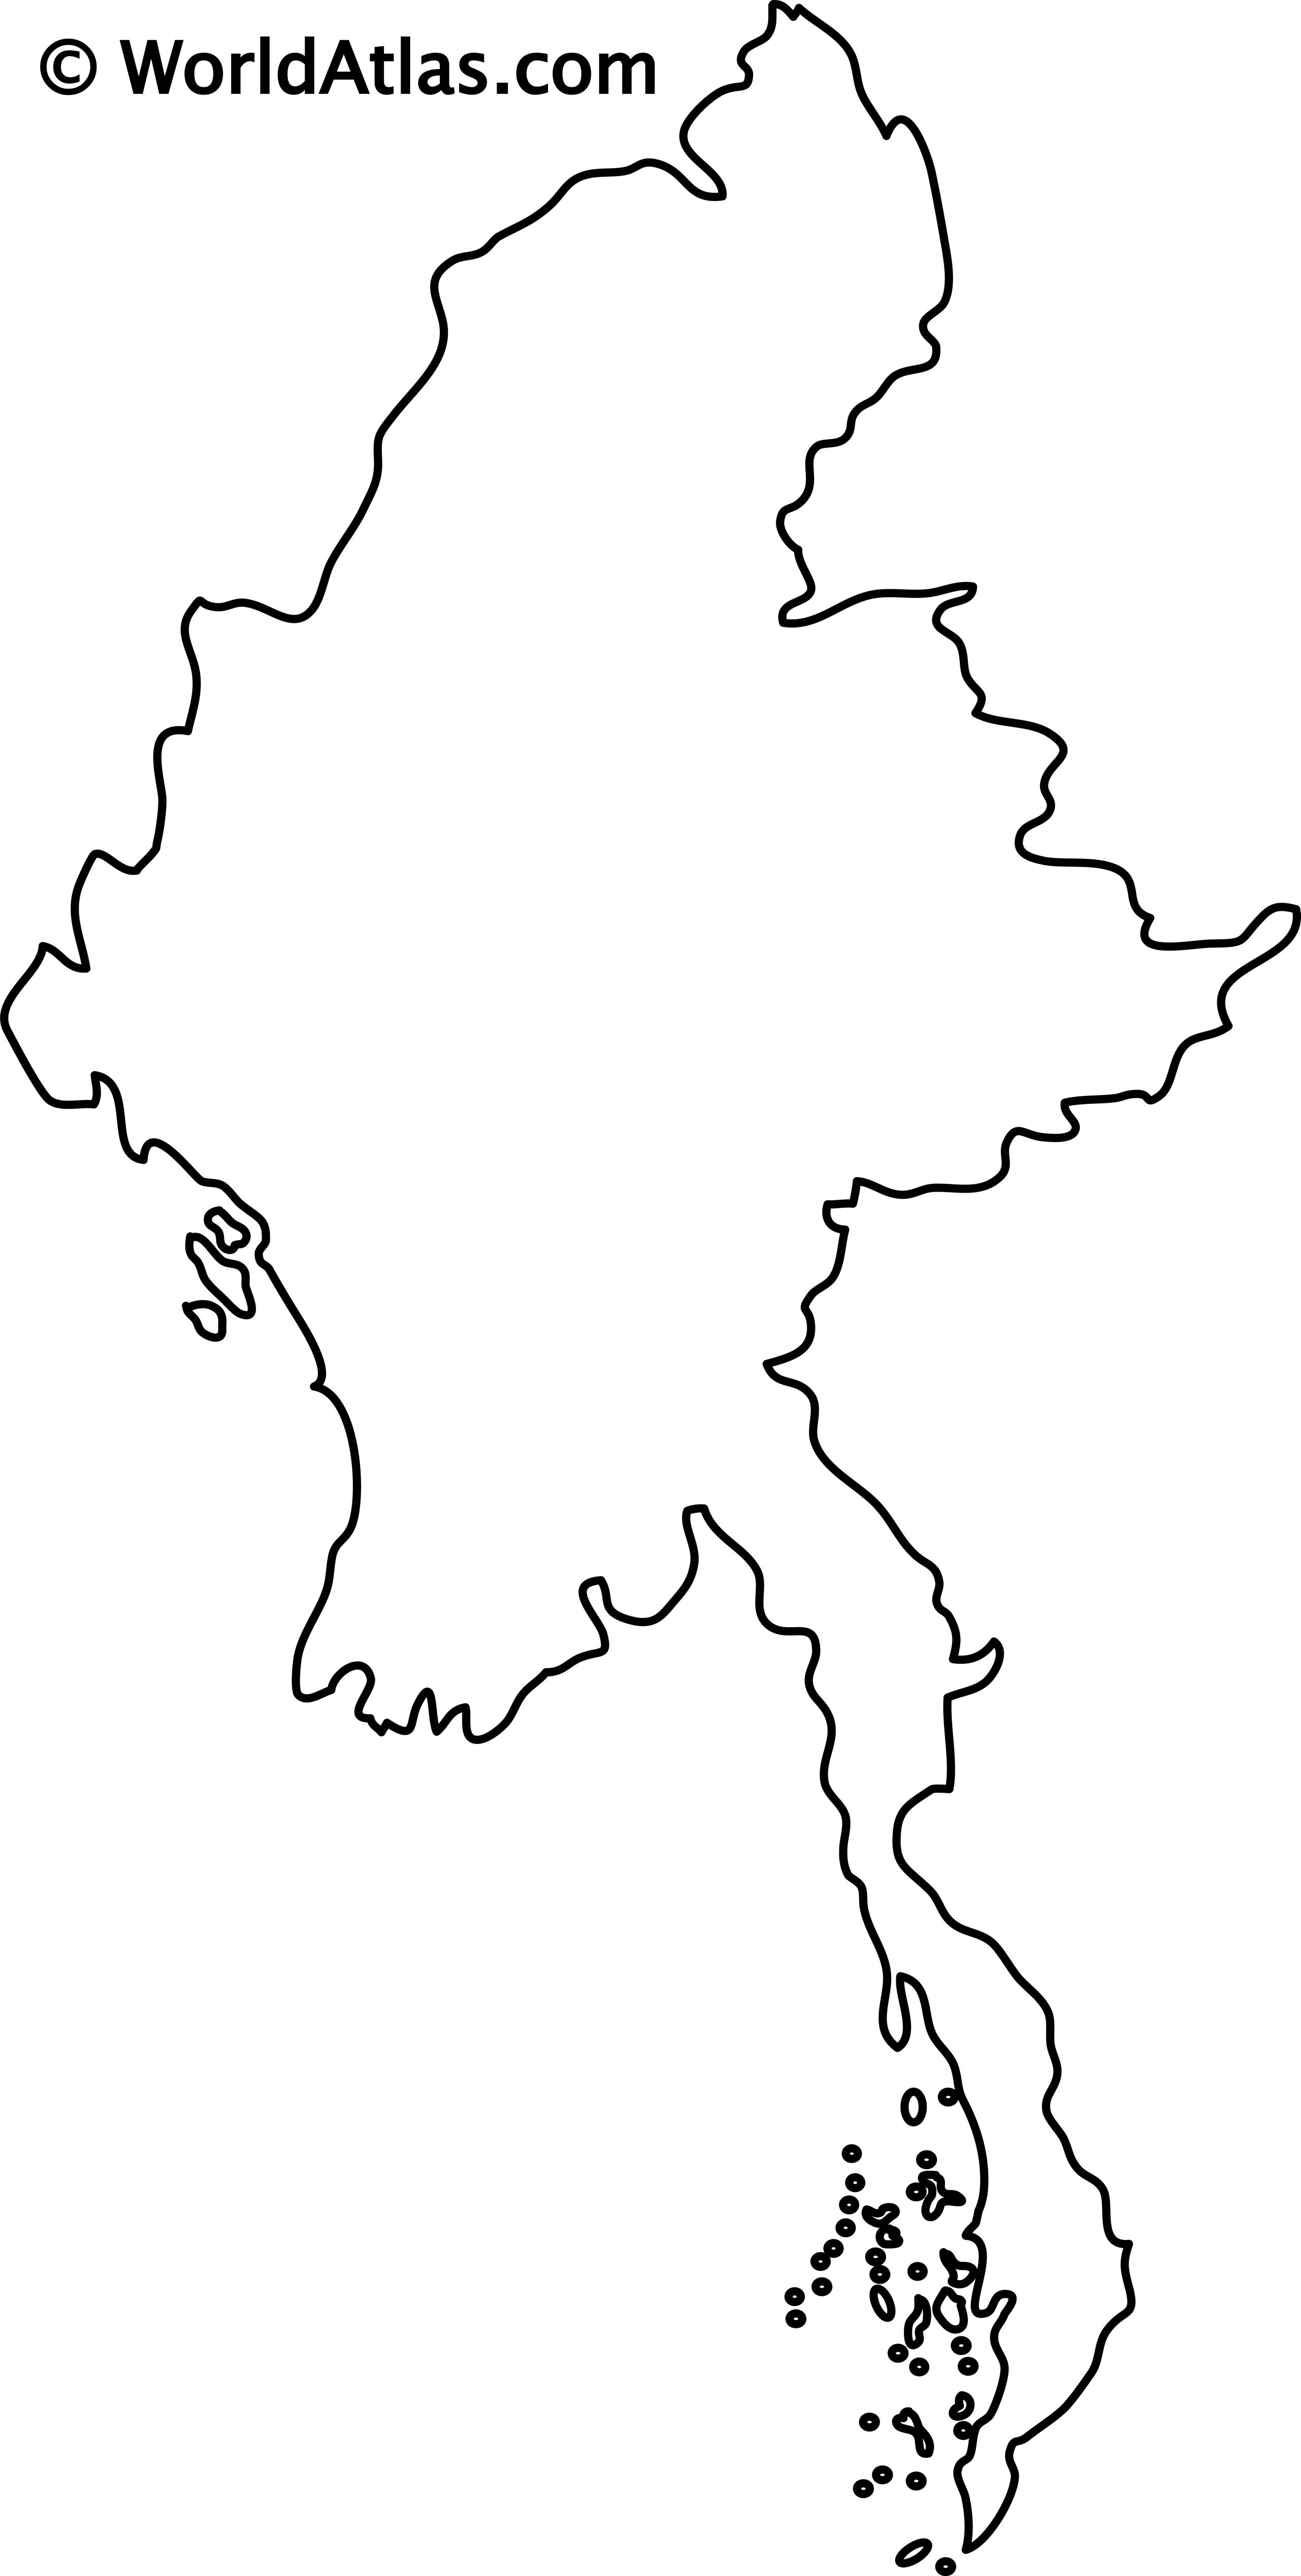 Blank Outline Map of Myanmar/Burma